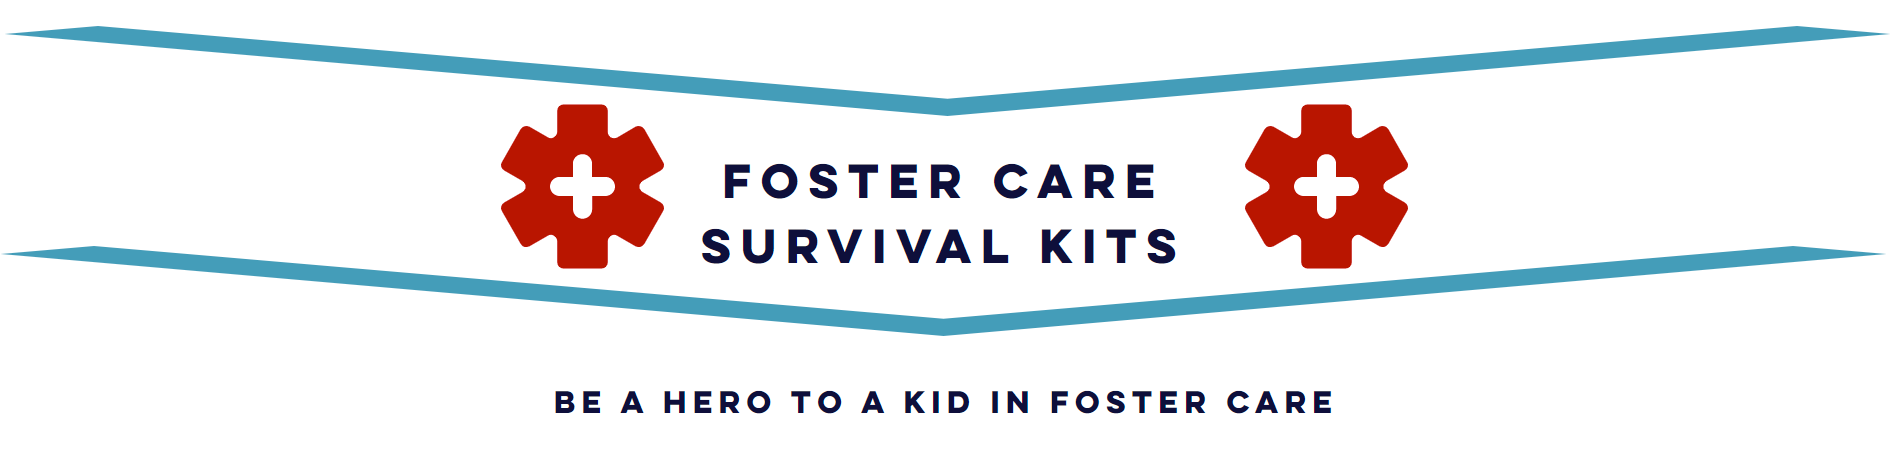 foster care survival kits